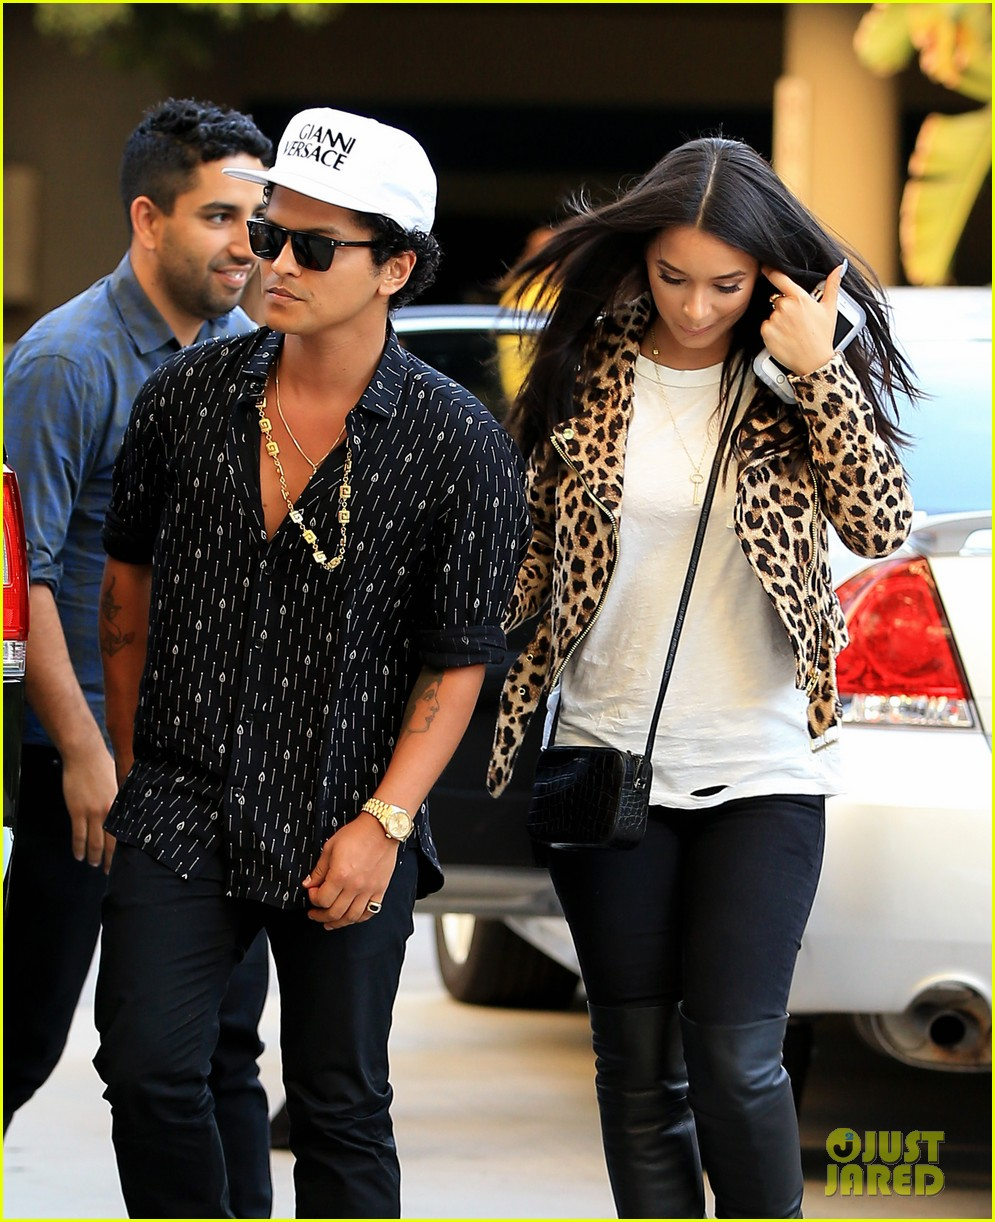 Who is bruno mars dating